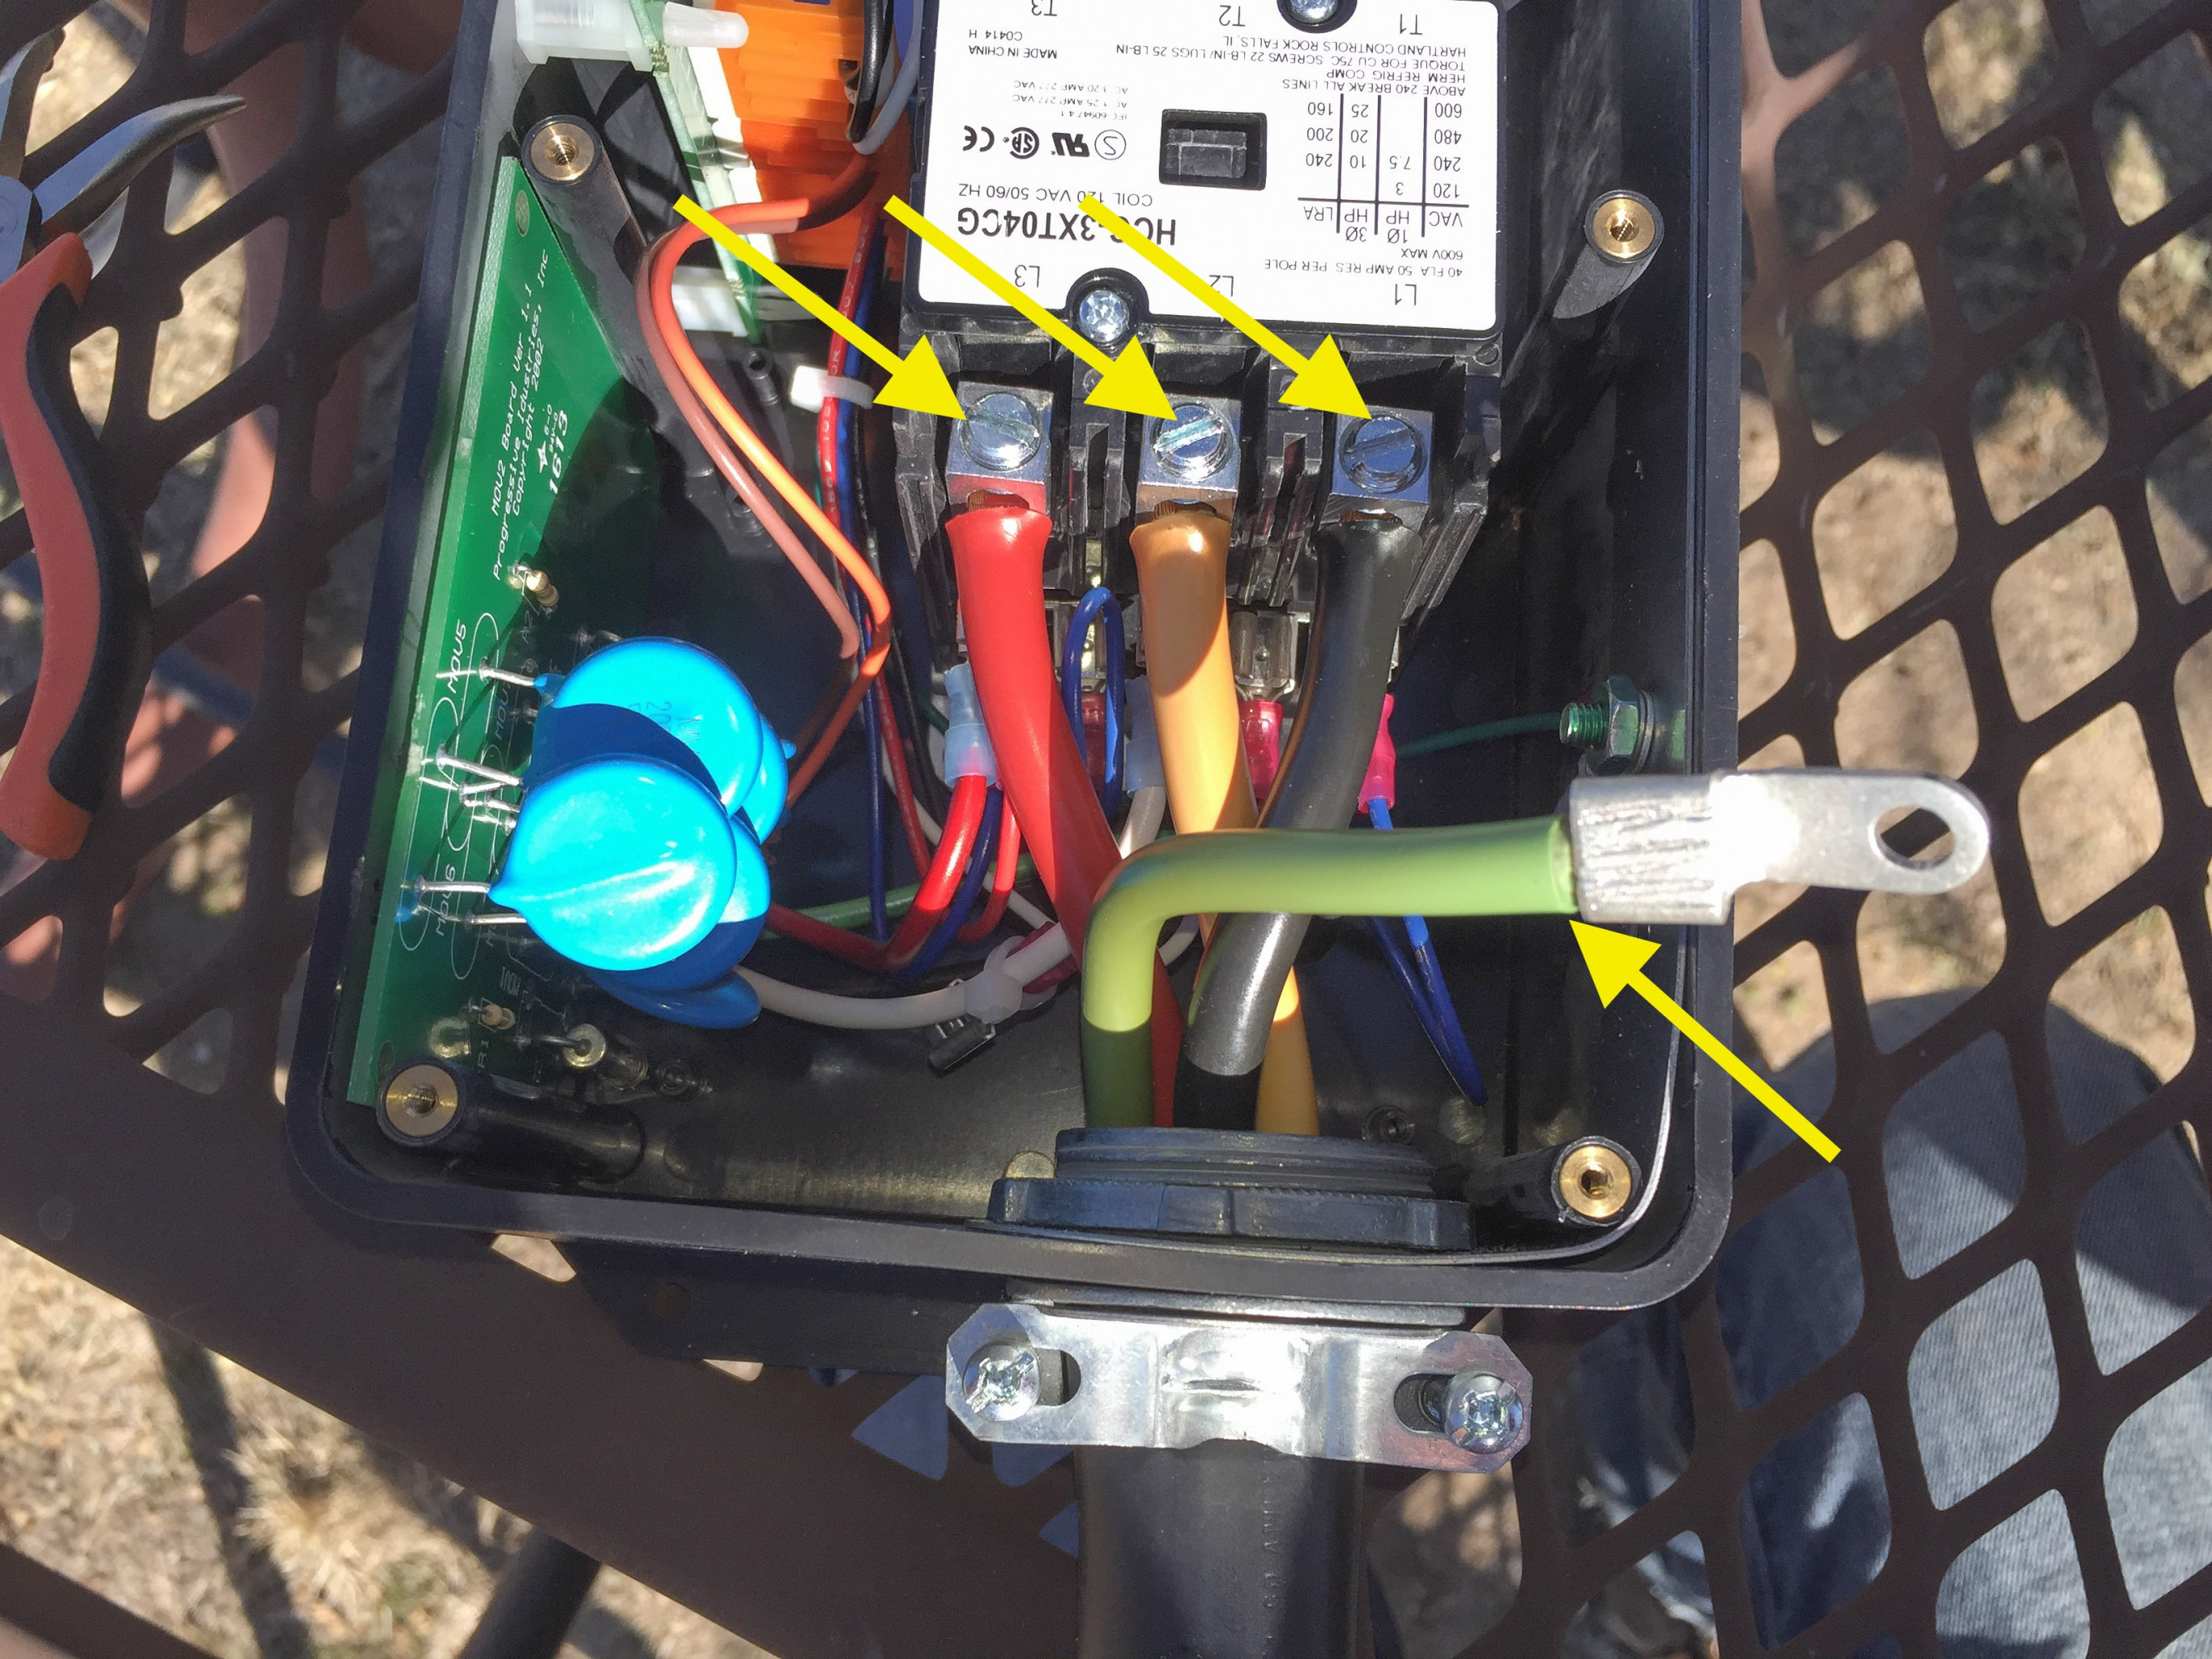 Life Rebooted Adding Rv Power Protection To Rover Extension Cord 30 Wiring Diagram On Amp 3 Pole 4 Wire 600v Connecting The Progressive Unit